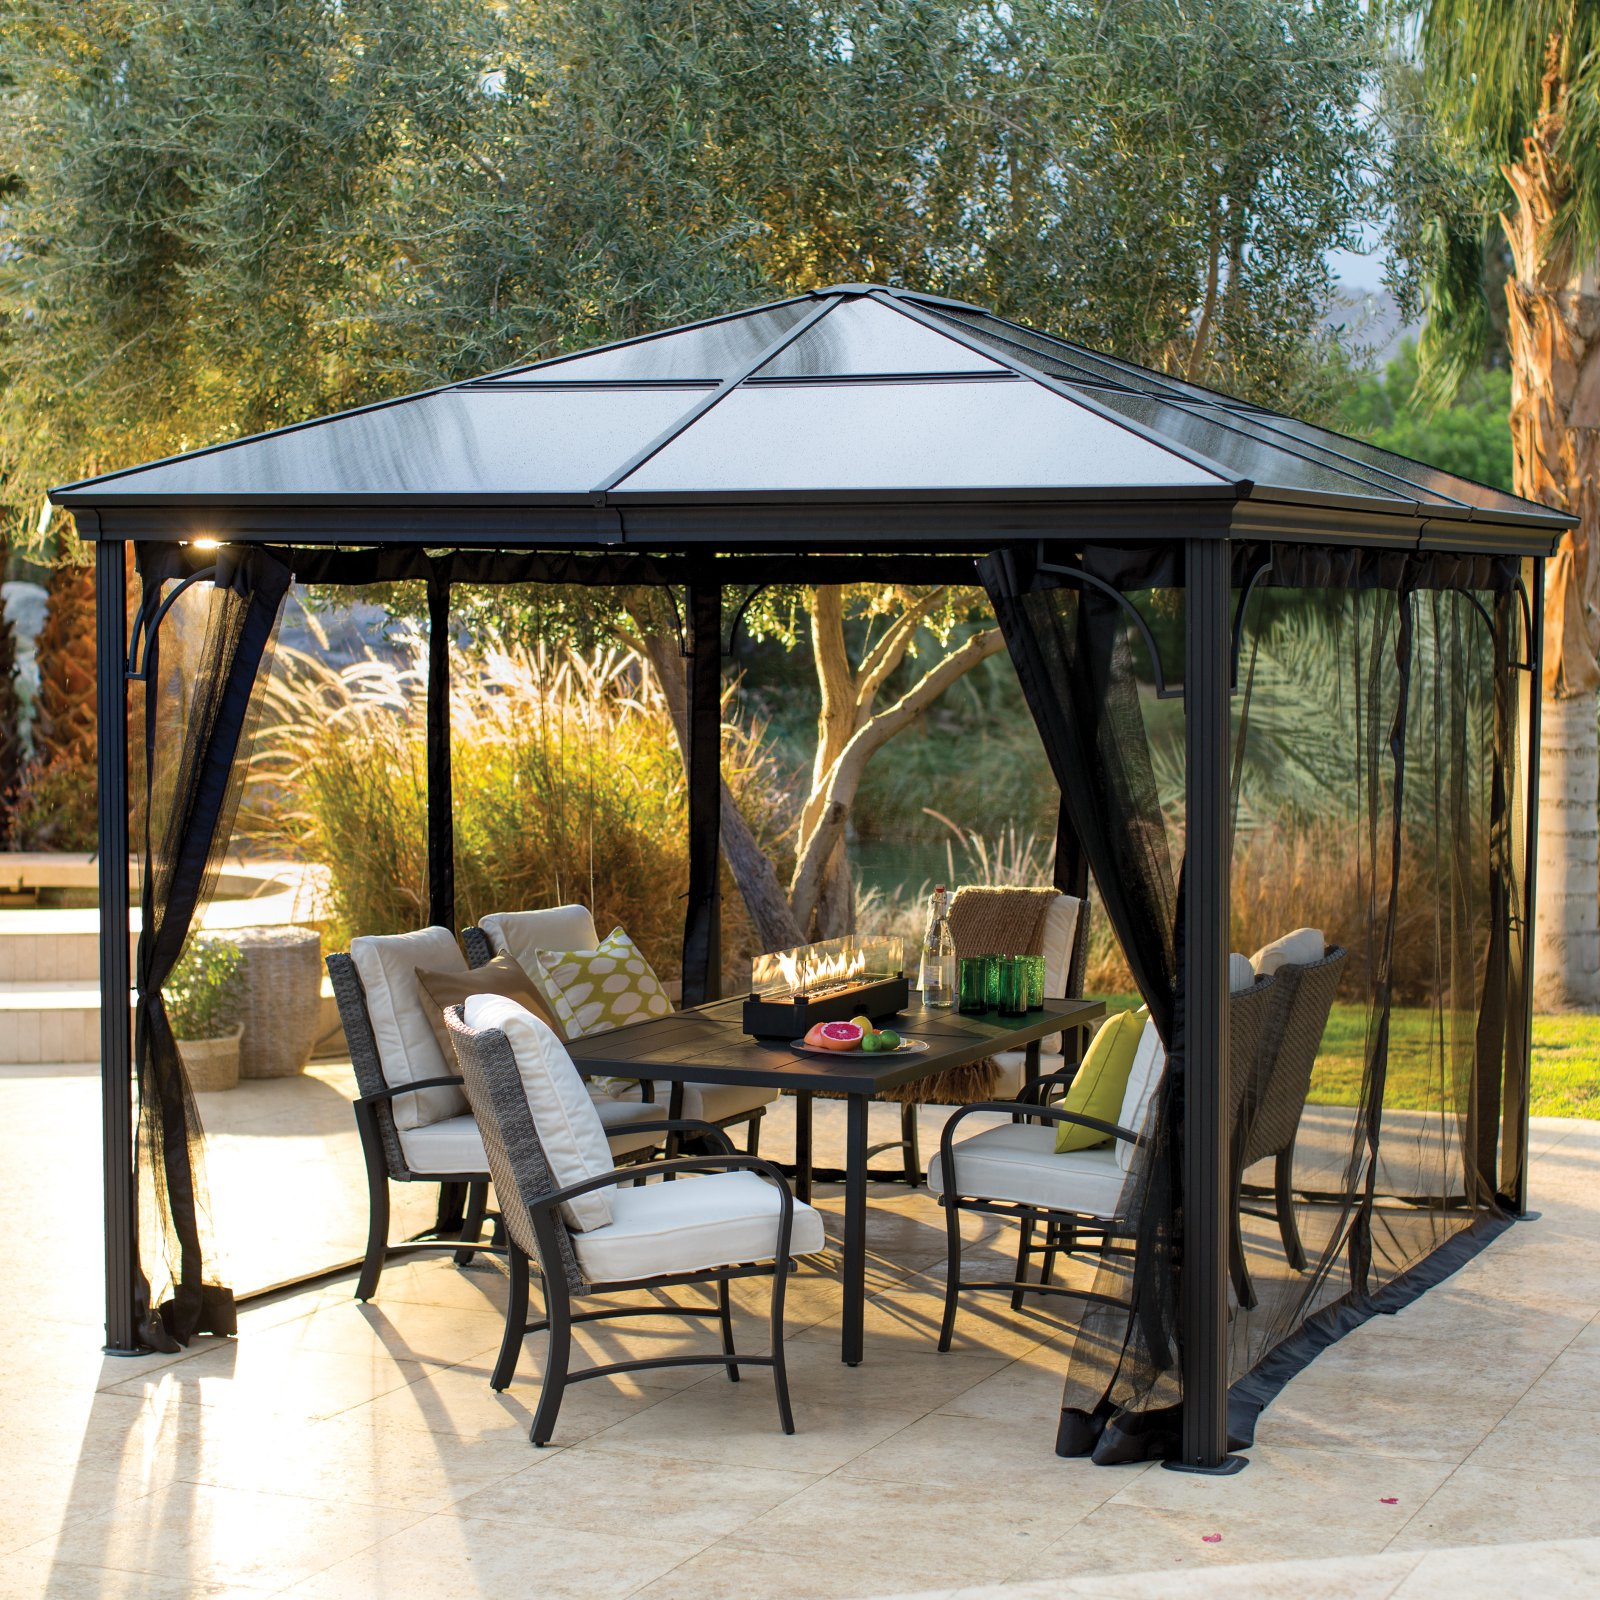 Belham Living Augusta 10 x 12 ft. Gazebo with Polycarbonate Top and Insect Netting by